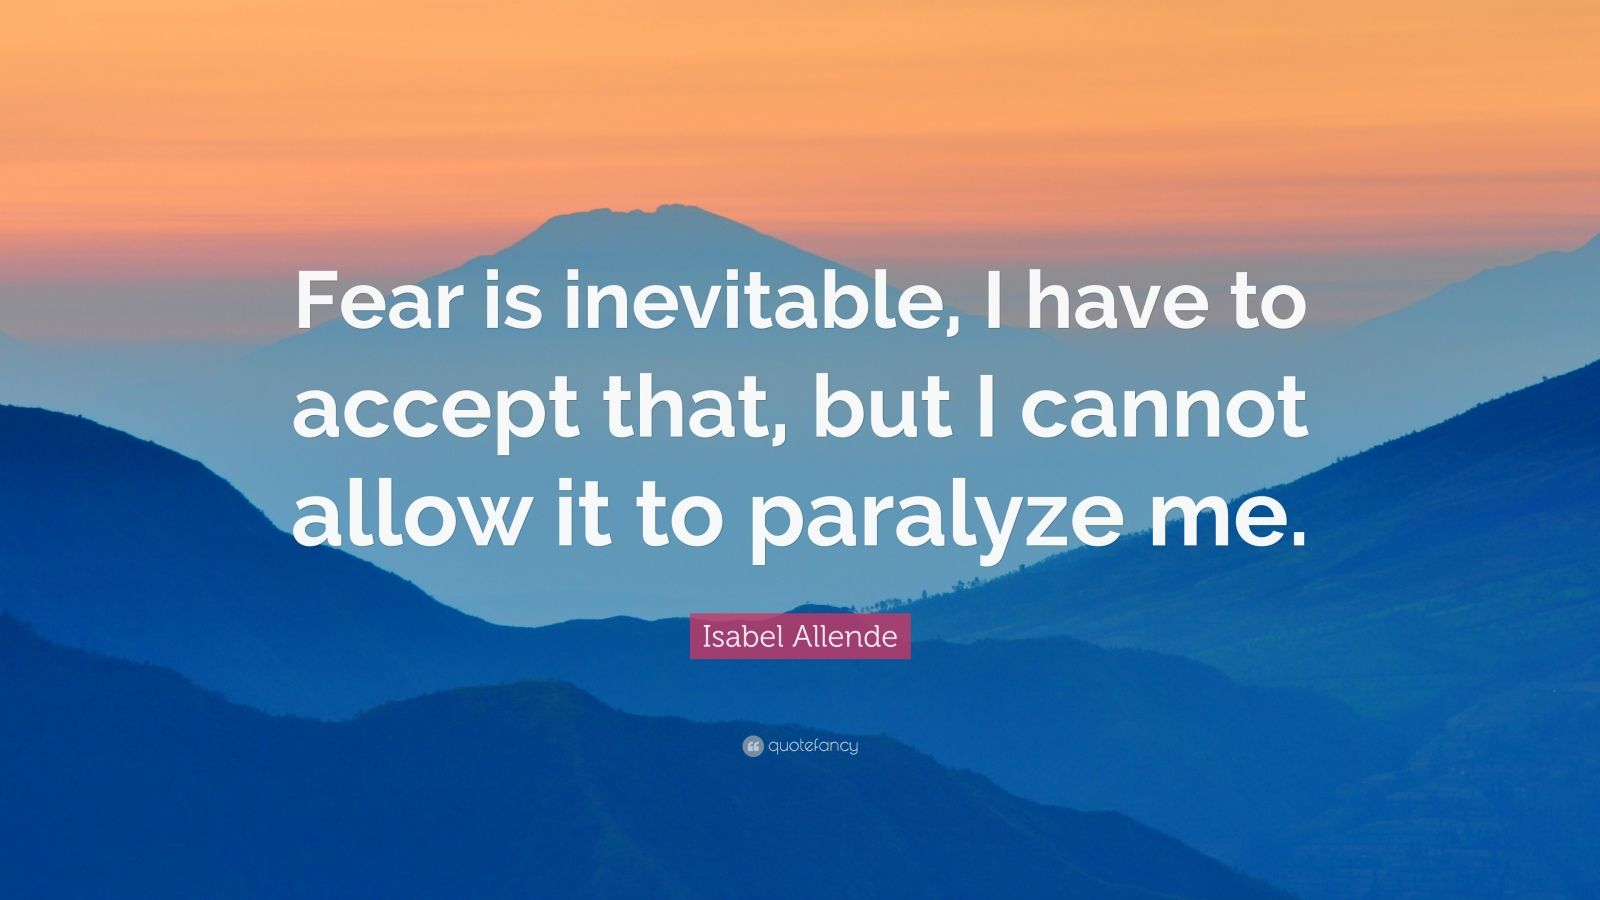 """Isabel Allende Quote: """"Fear is inevitable, I have to accept that, but I cannot allow it to paralyze me."""""""